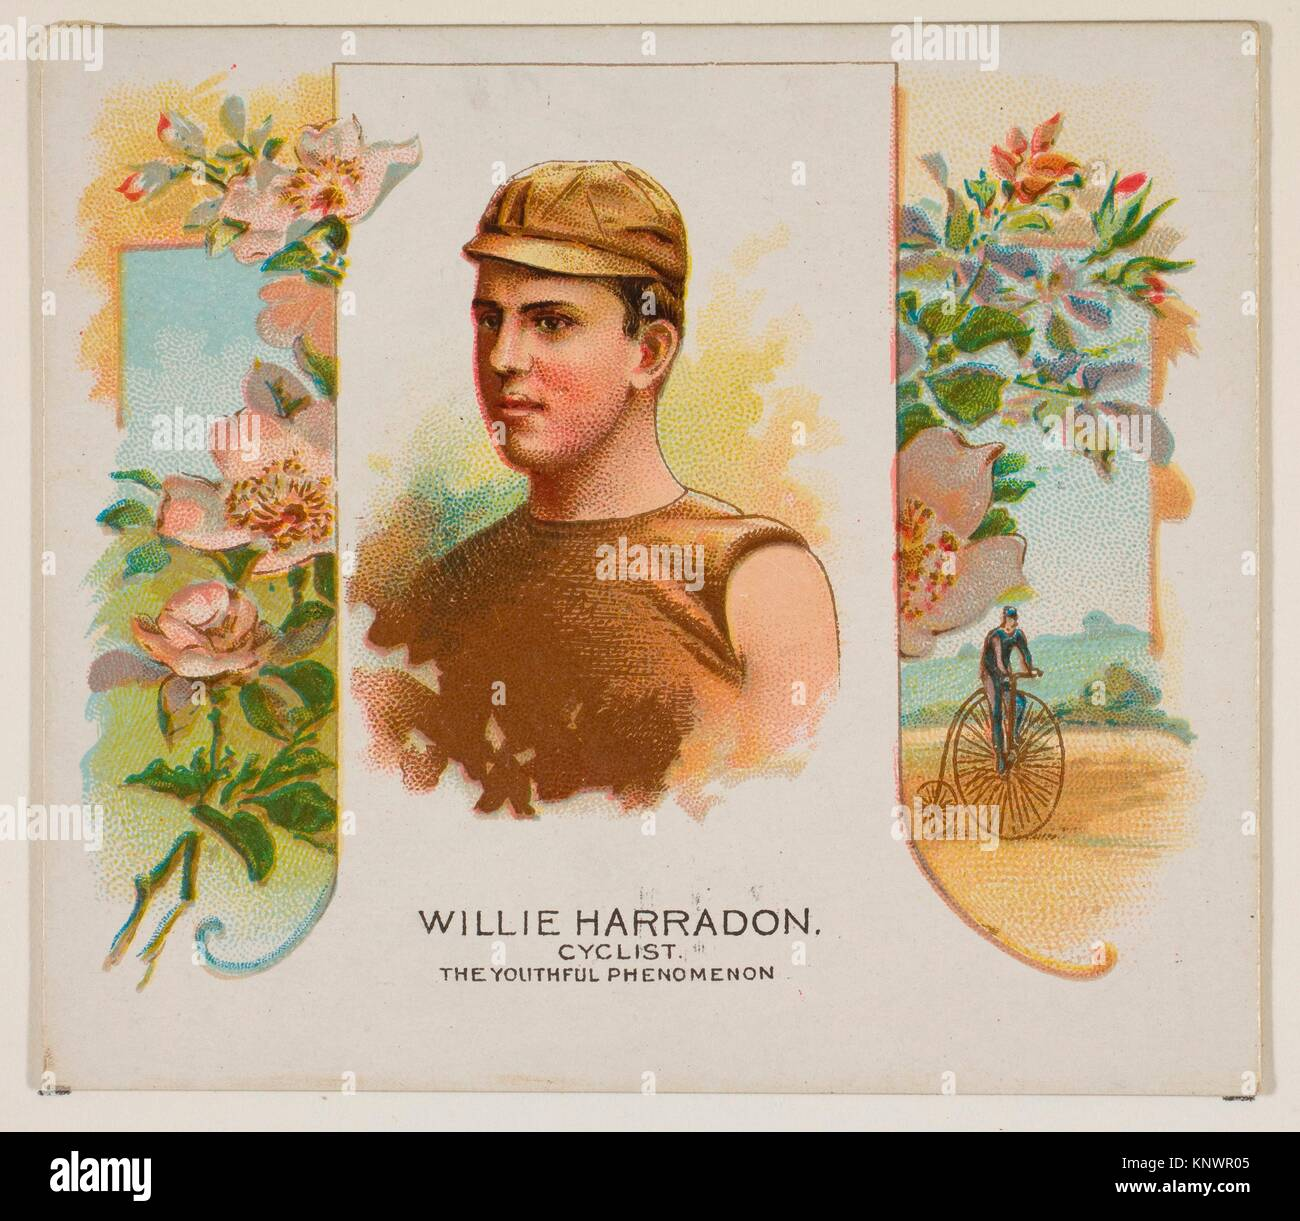 Willie Harradon, Cyclist, The Youthful Phenomenon, from World's Champions, Second Series (N43) for Allen & - Stock Image